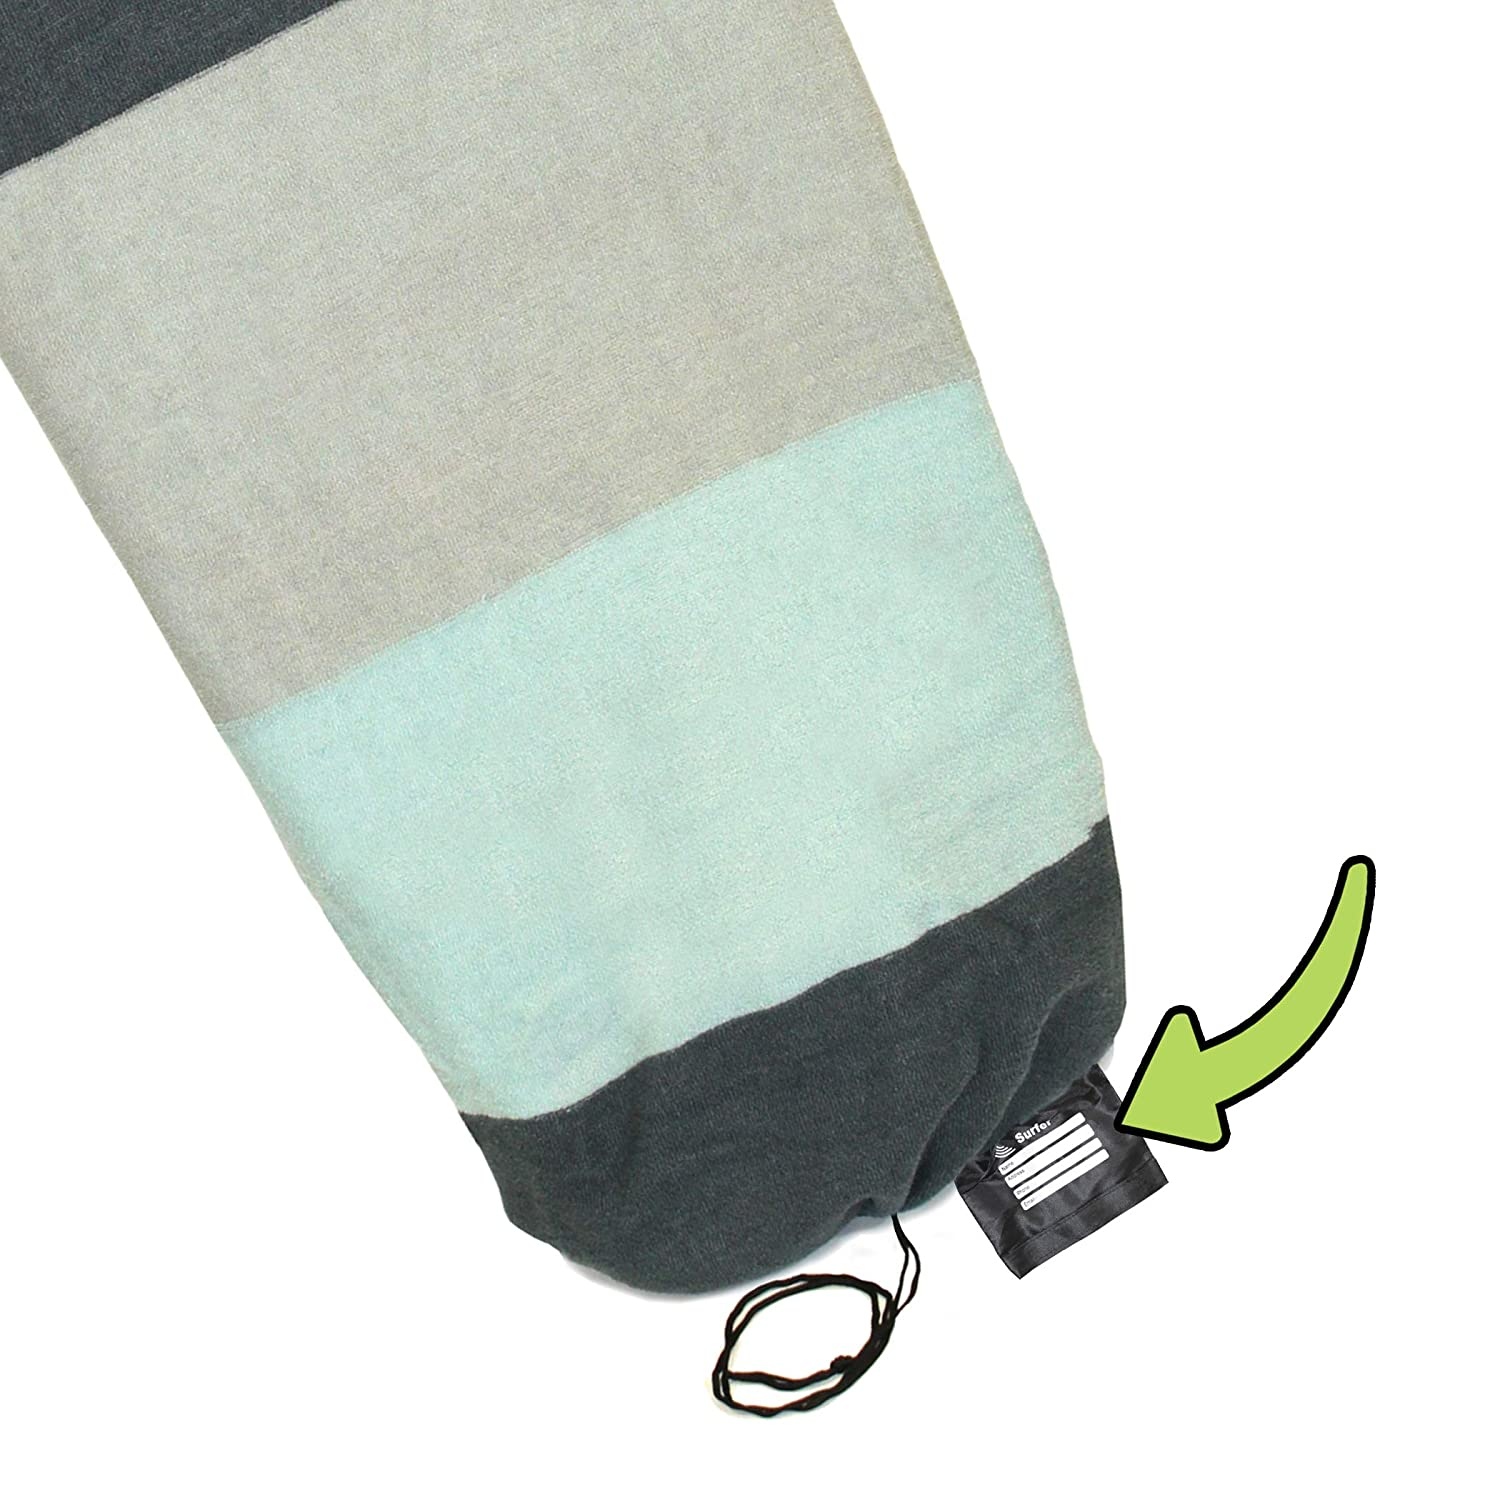 Tidal Wake TAG-IT Snub Nose Sea Foam Green /& Gray Wide Striped Surf /& Wake Board Sock Bag with Built-in Name Tag 58 Tag Your Bag Personalize with Your Name!